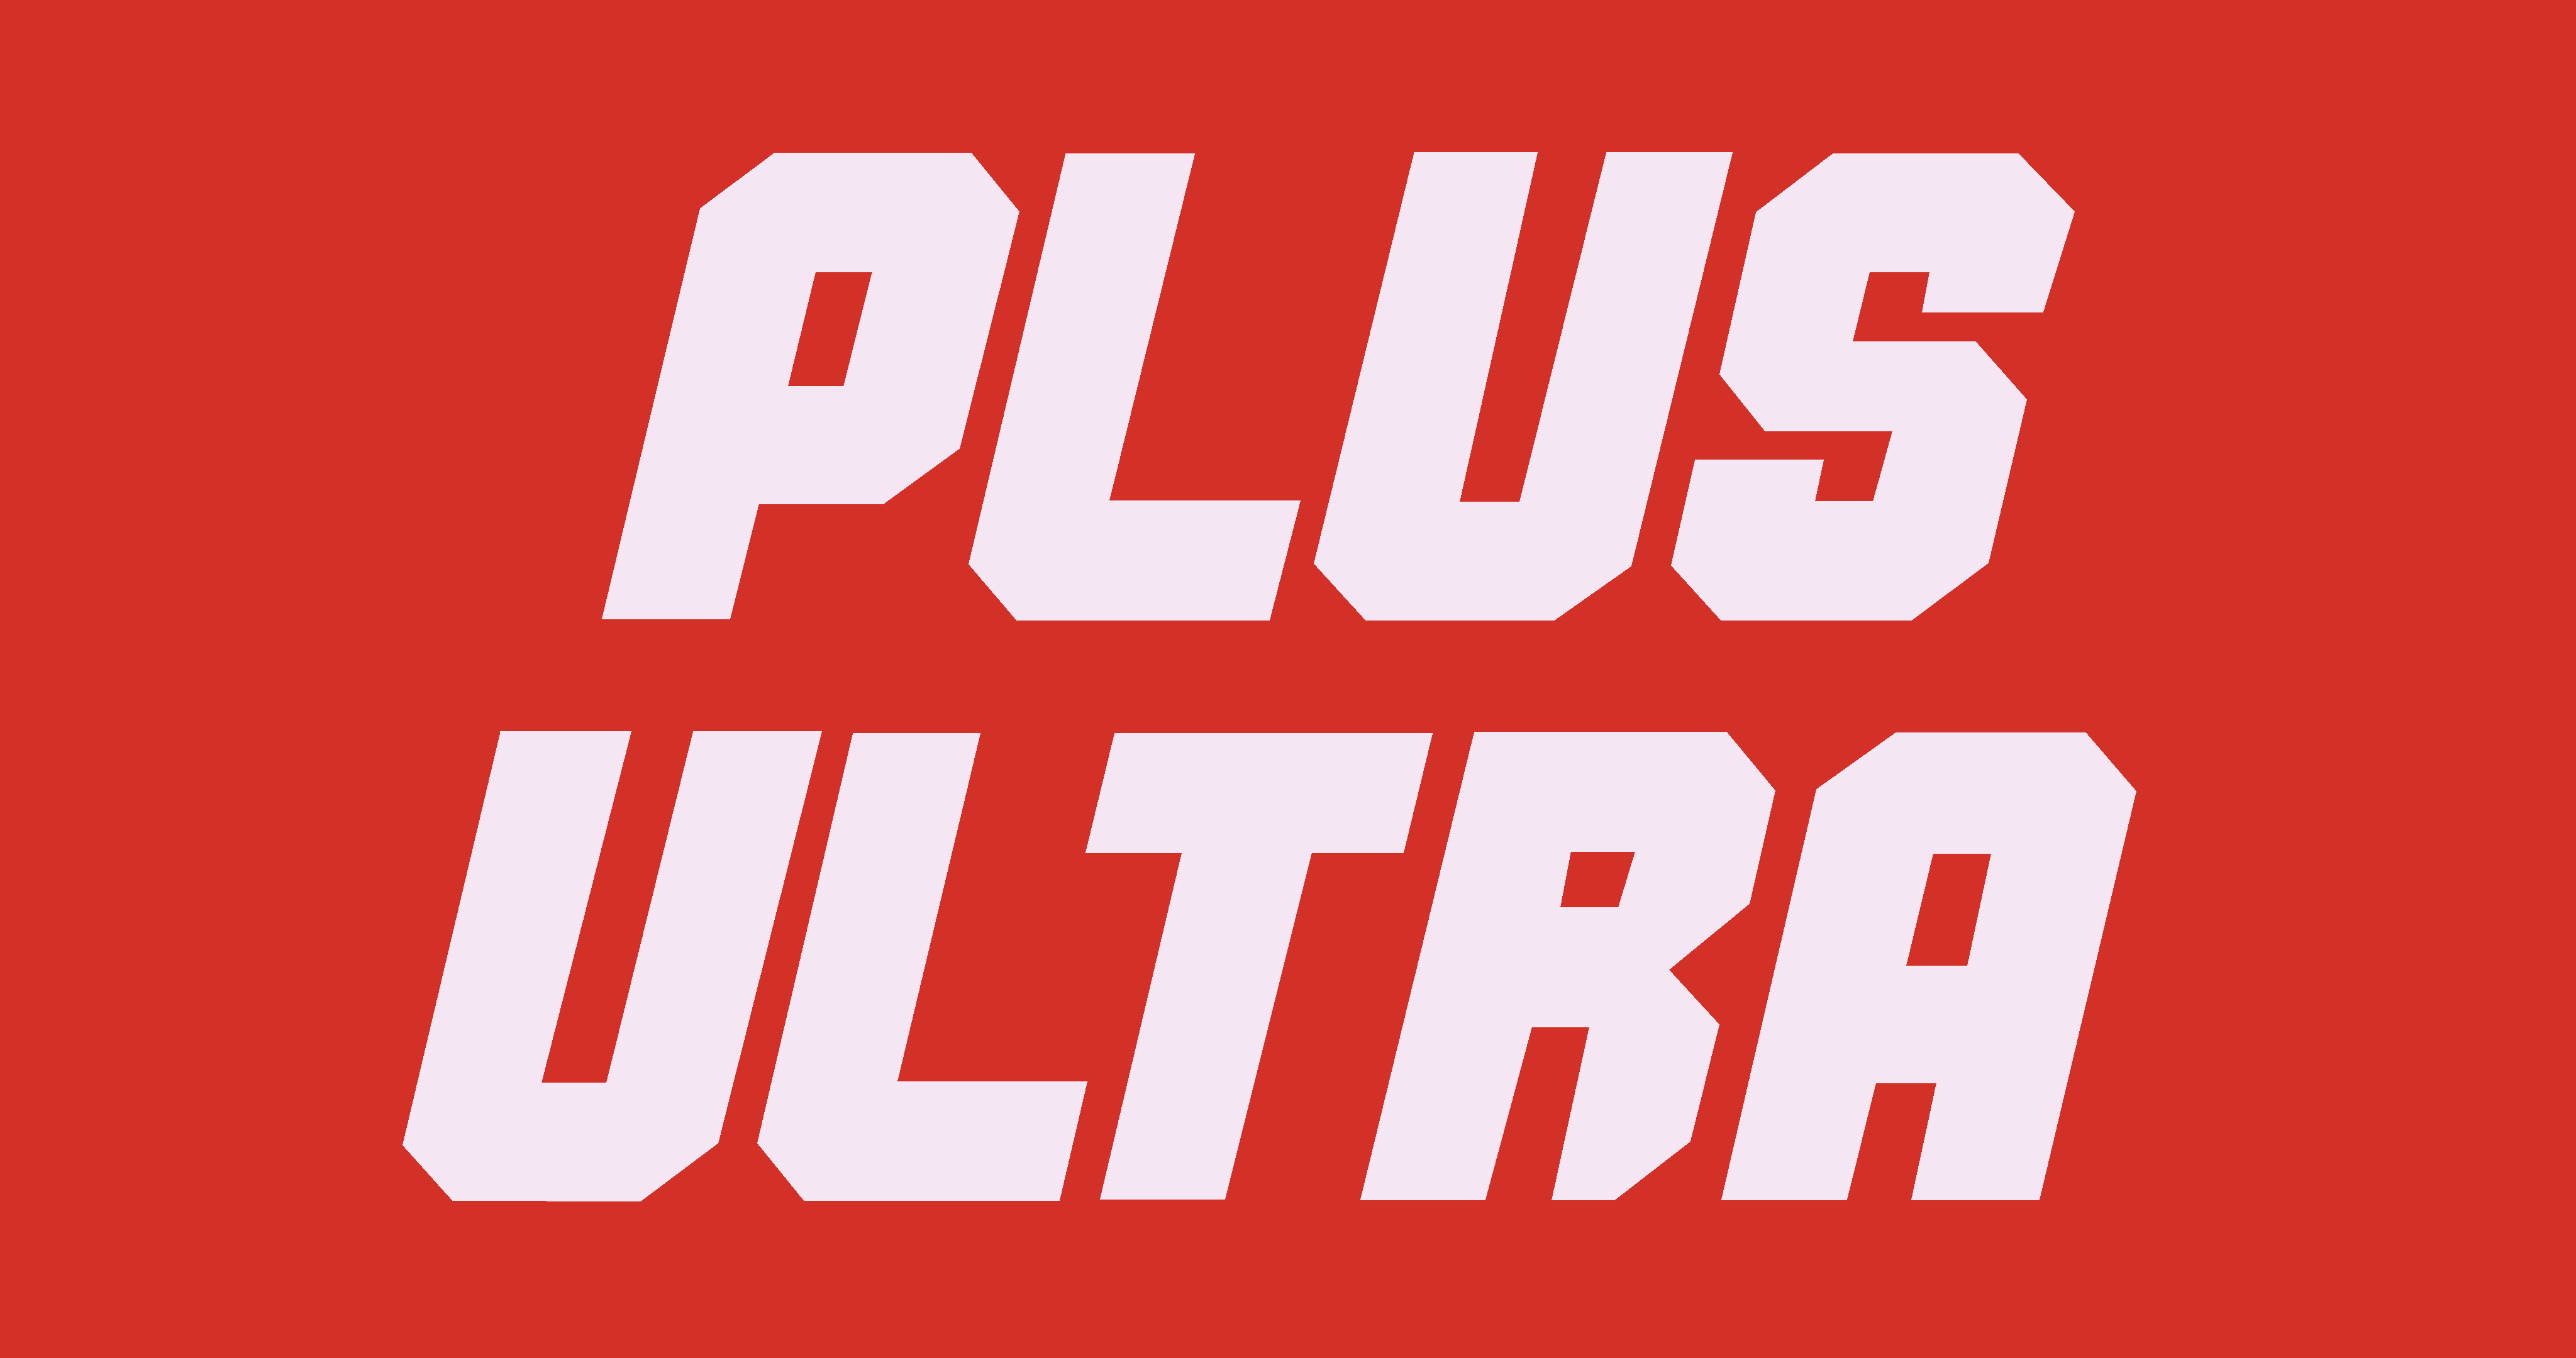 Plus Ultra Wallpapers Top Free Plus Ultra Backgrounds